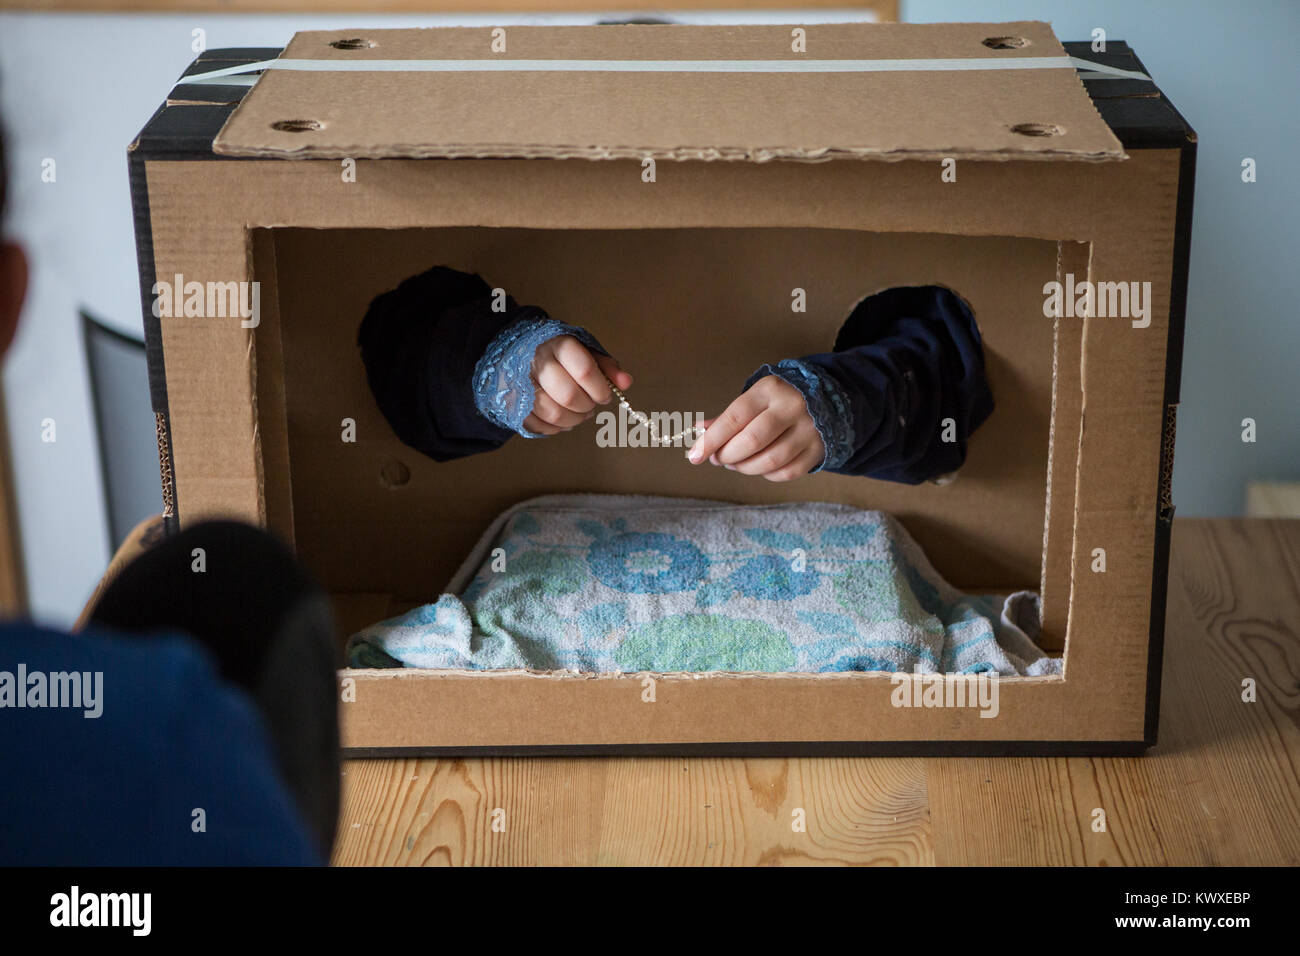 Whats in the box challenge. Feeling things playing the game - Stock Image